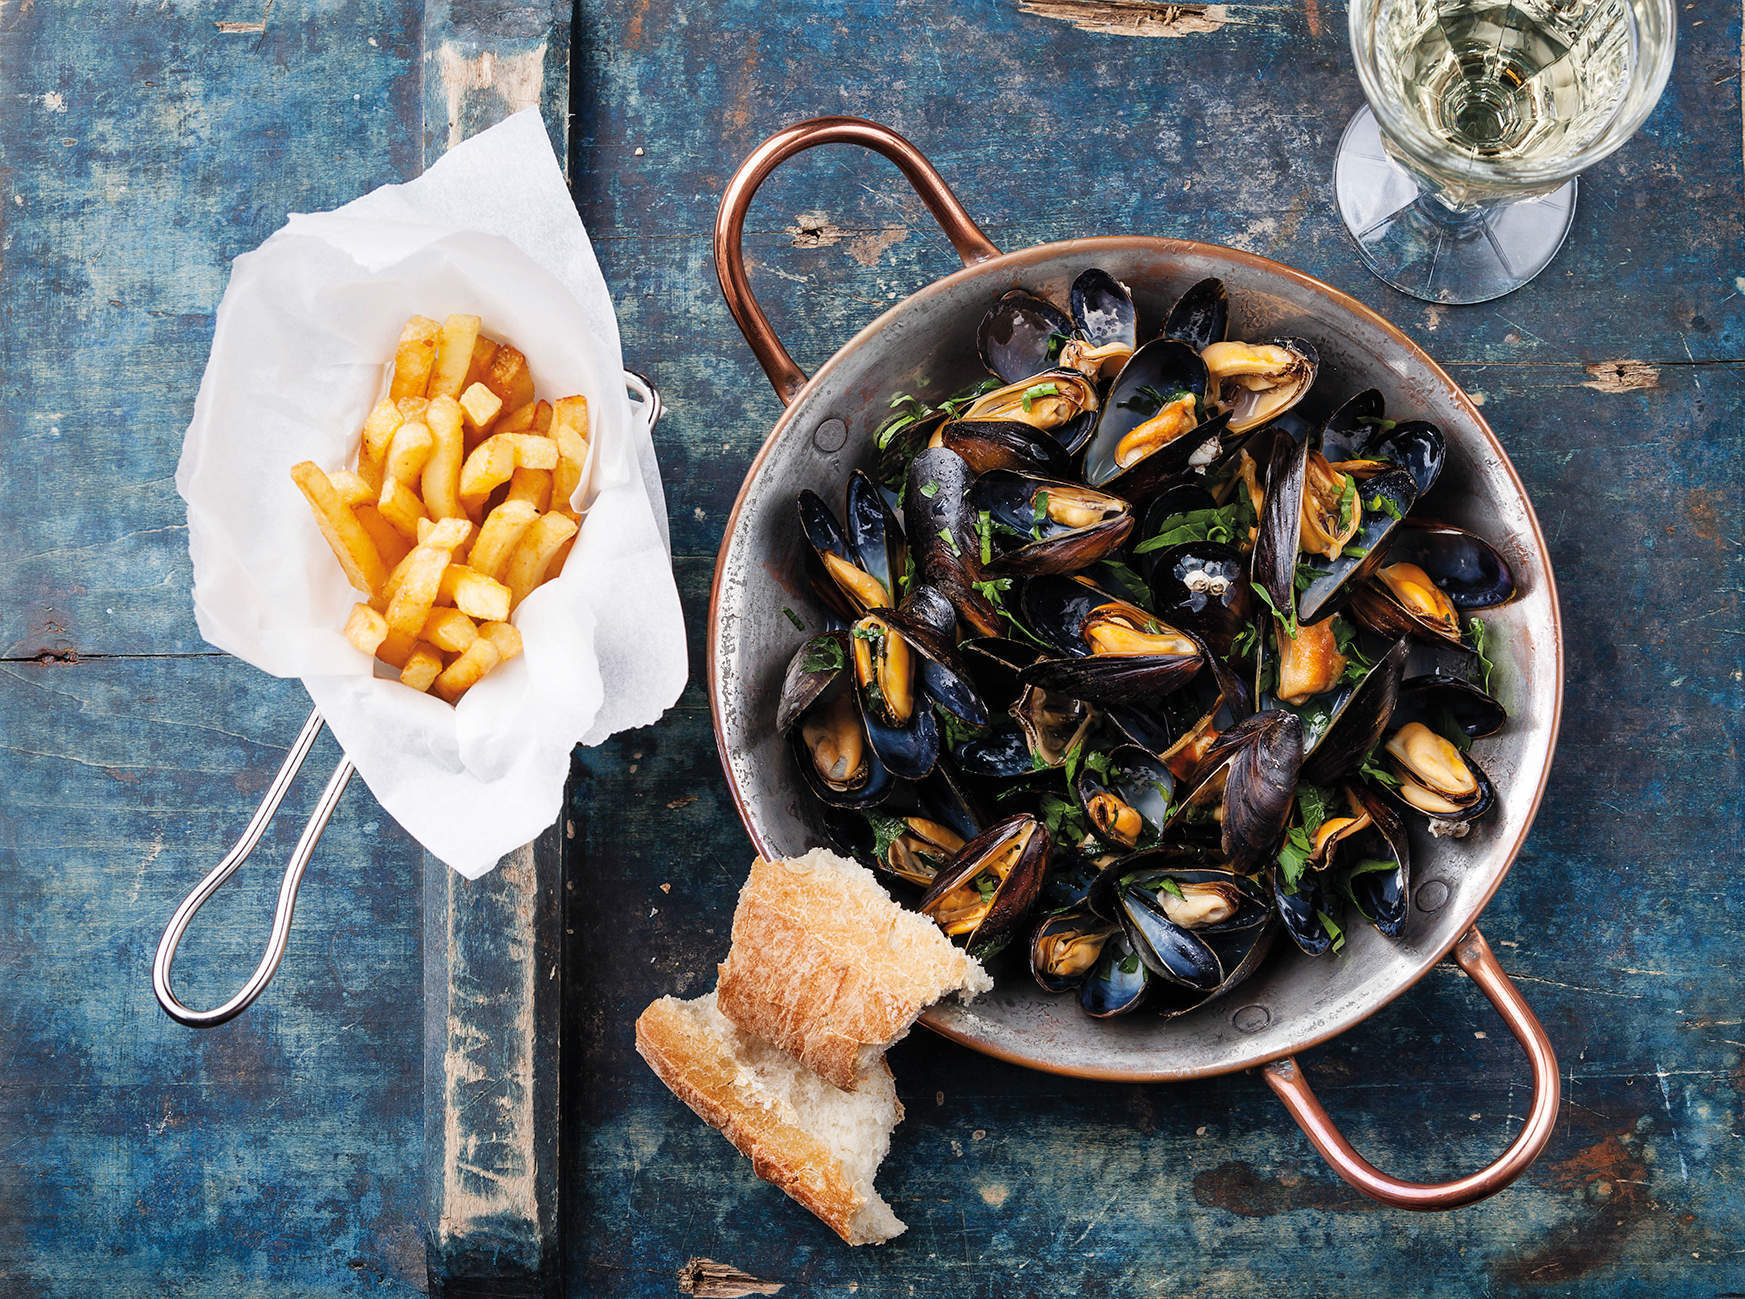 Your daily rations for the Tour de France: 11 generous portions of moules frites